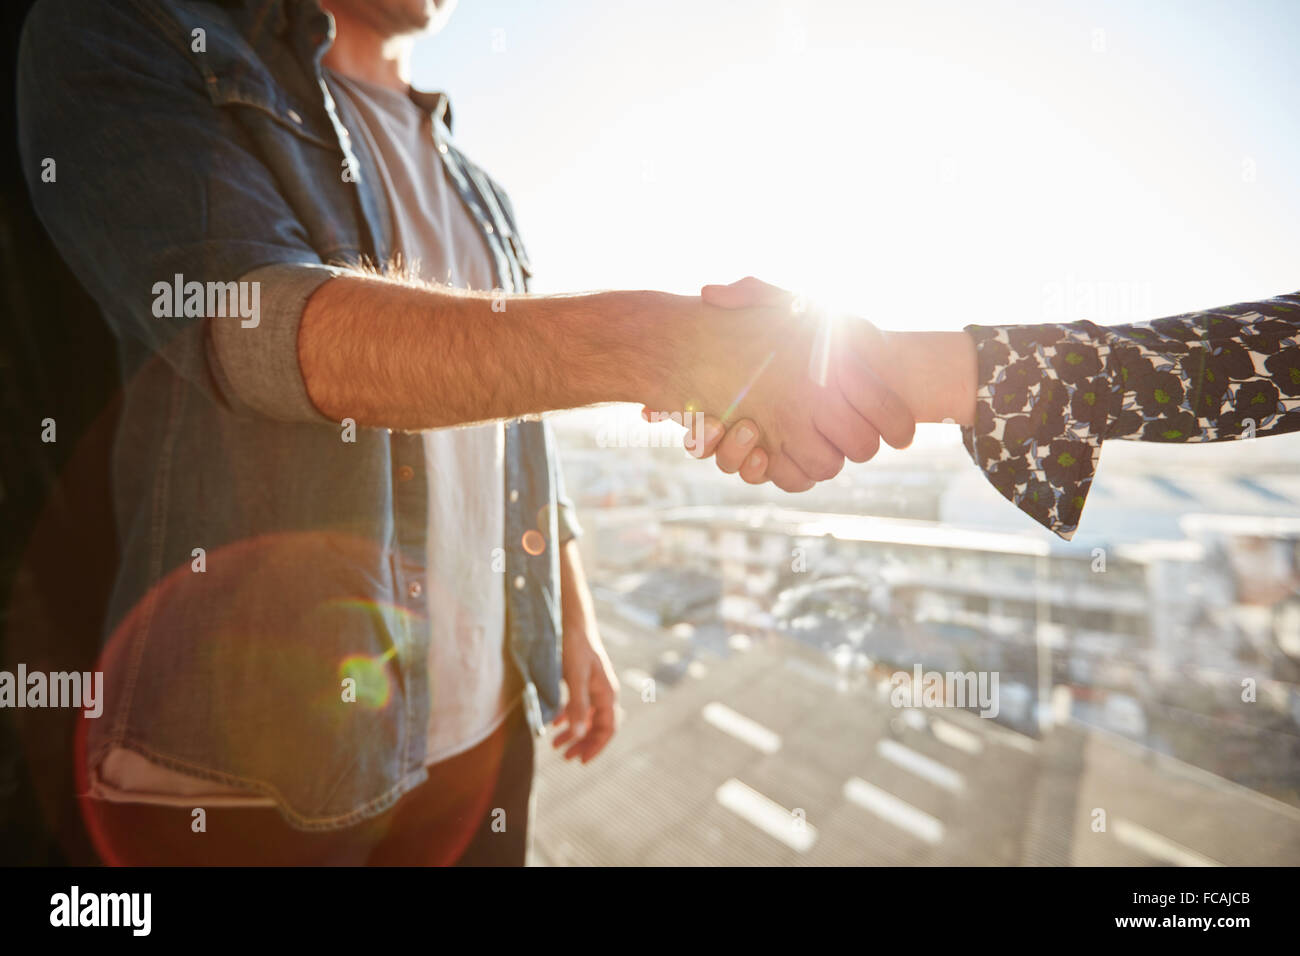 Closeup of shaking hands of man and woman with lens flare. Focus on handshake on a sunny day. - Stock Image